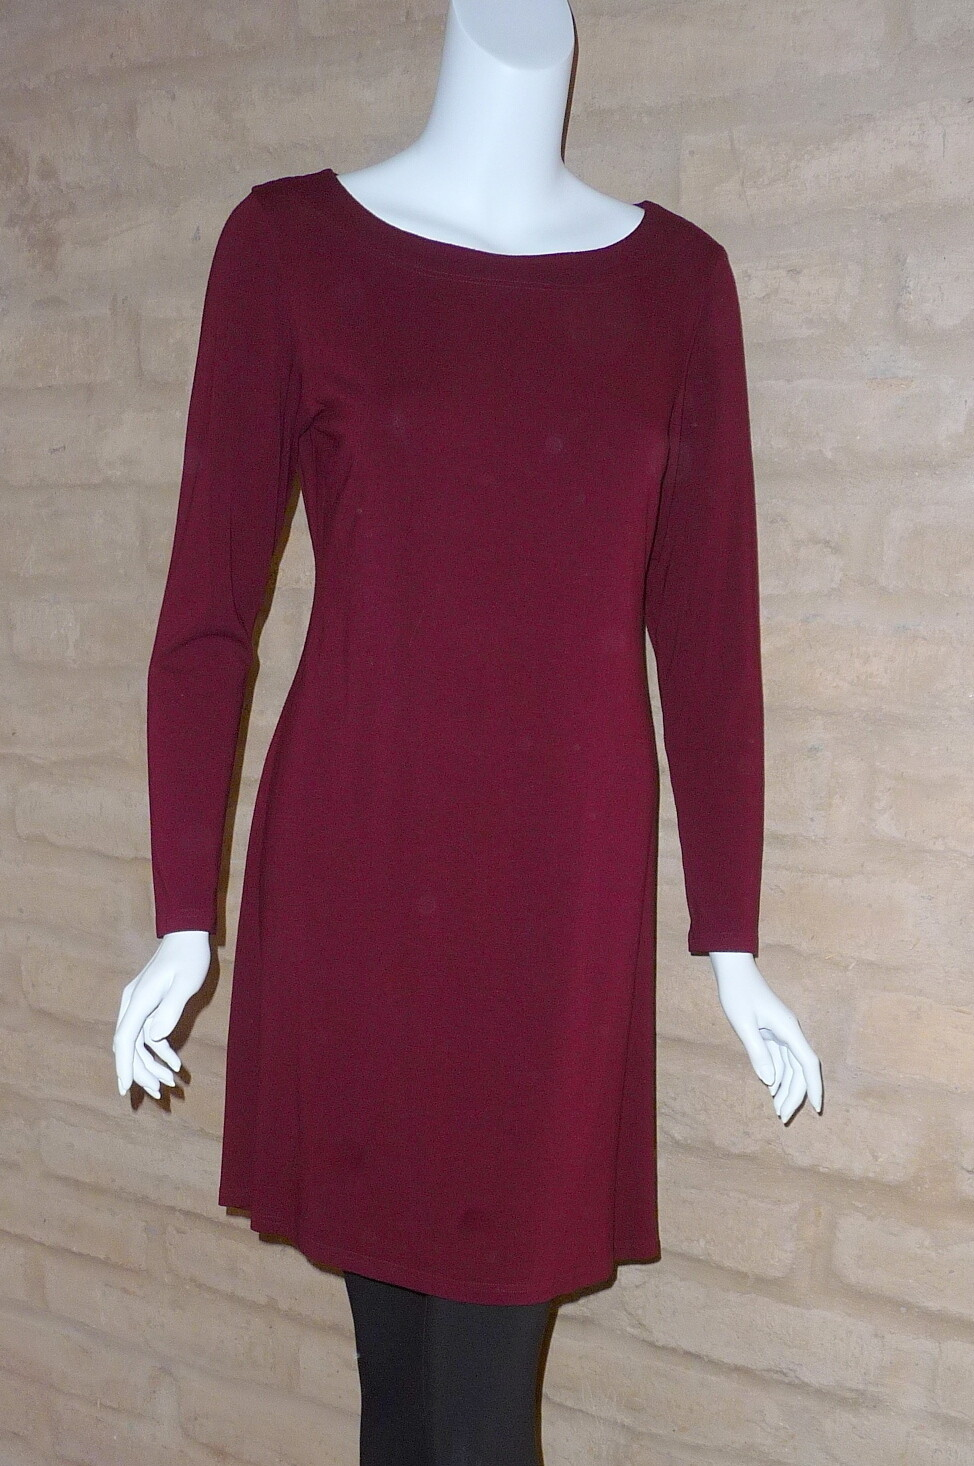 RAYON JERSEY L/S TUNIC DRESS